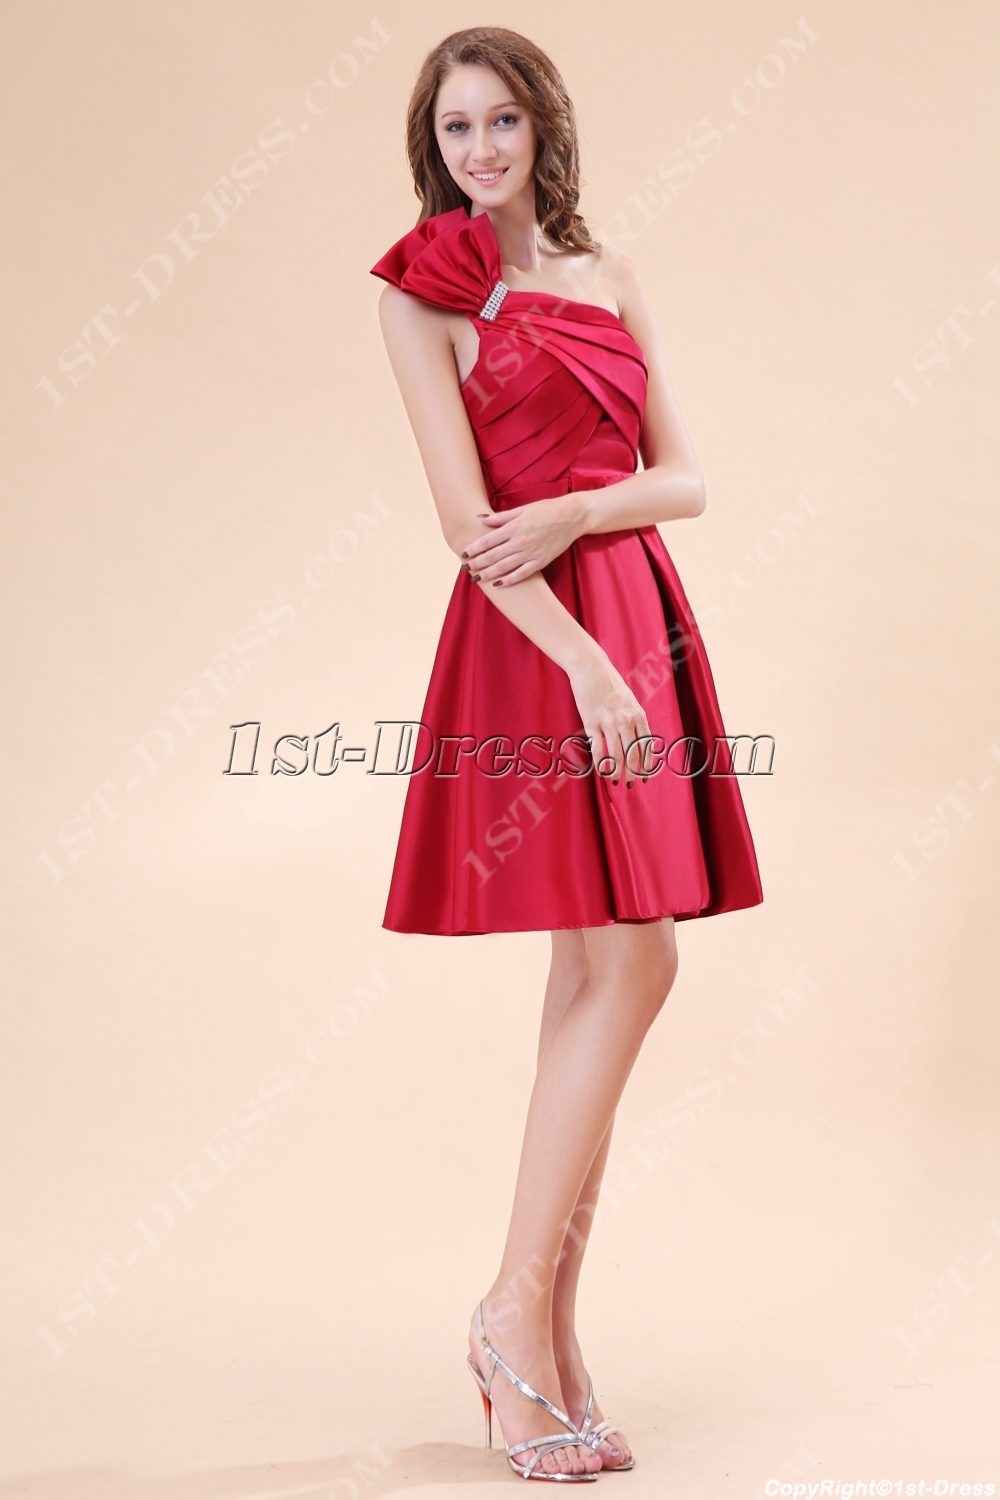 images/201311/big/Lovely-Burgundy-Satin-Short-Homecoming-Dresses-3480-b-1-1384167869.jpg